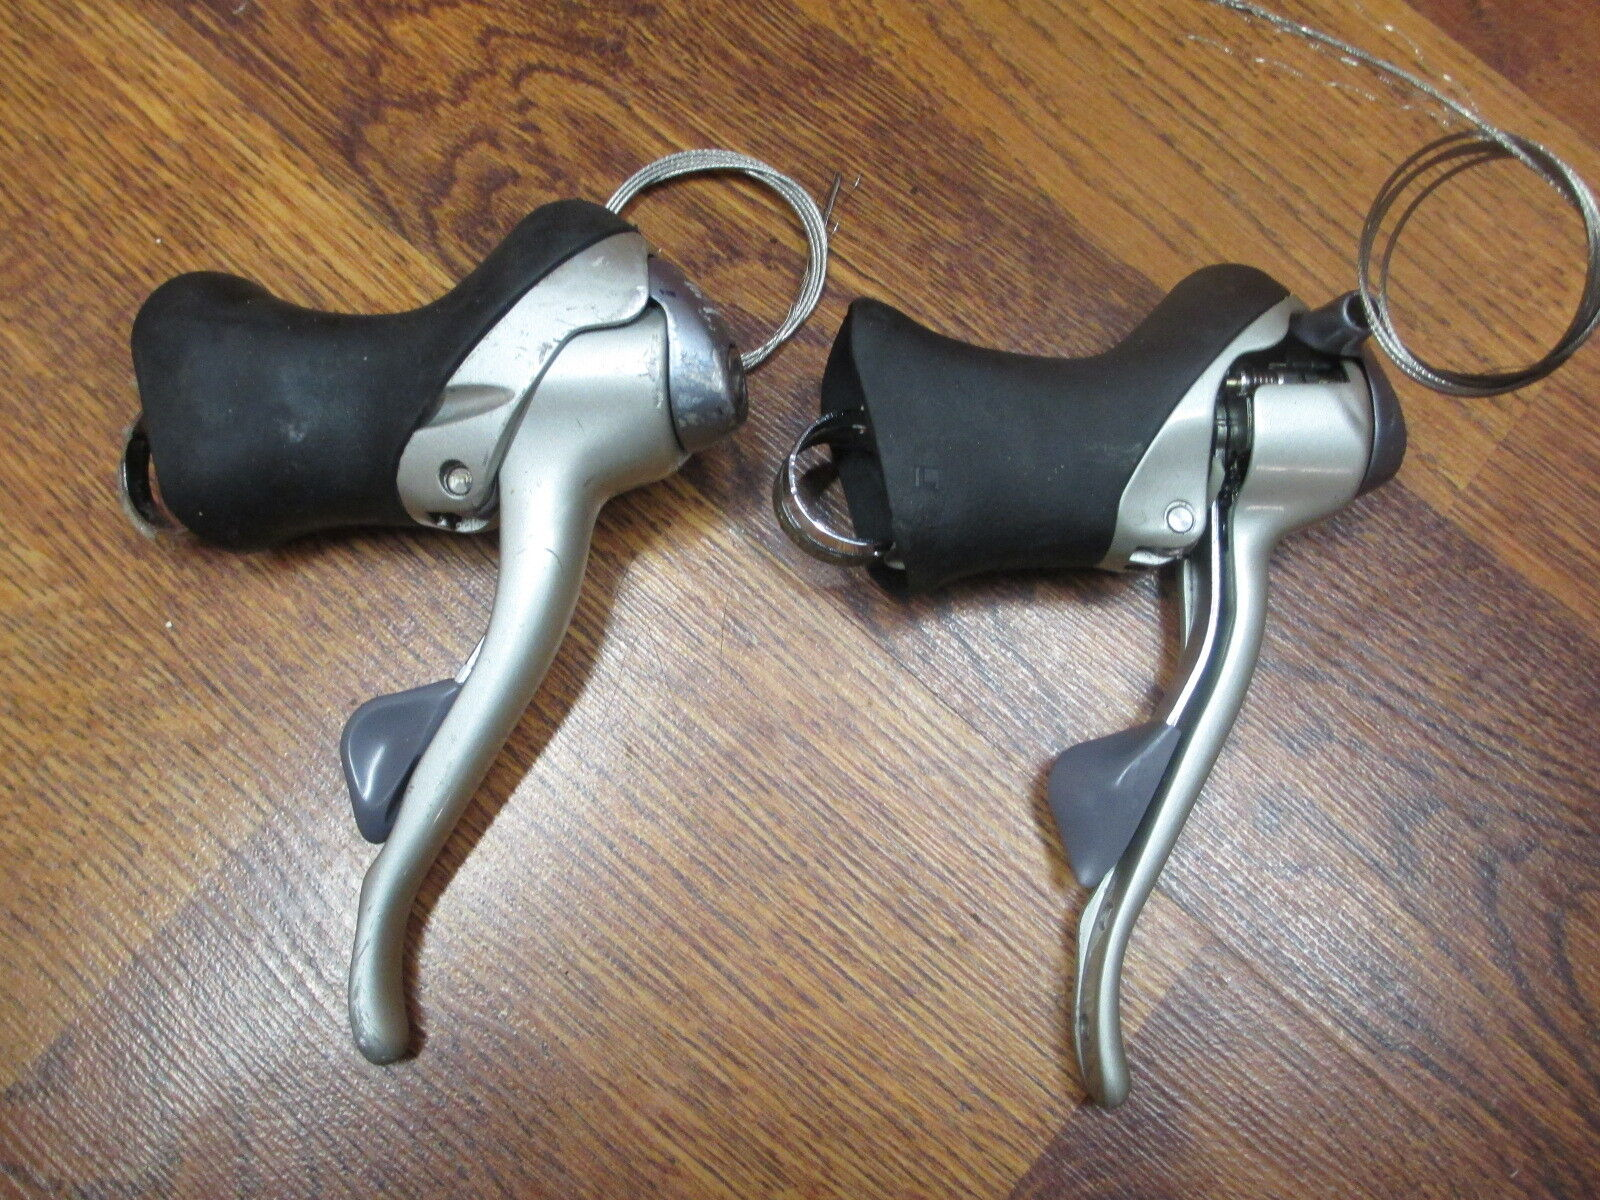 SHIMANO ST-1055 105 STI SHIFTER SET 8 SPEED DOUBLE TRIPLE